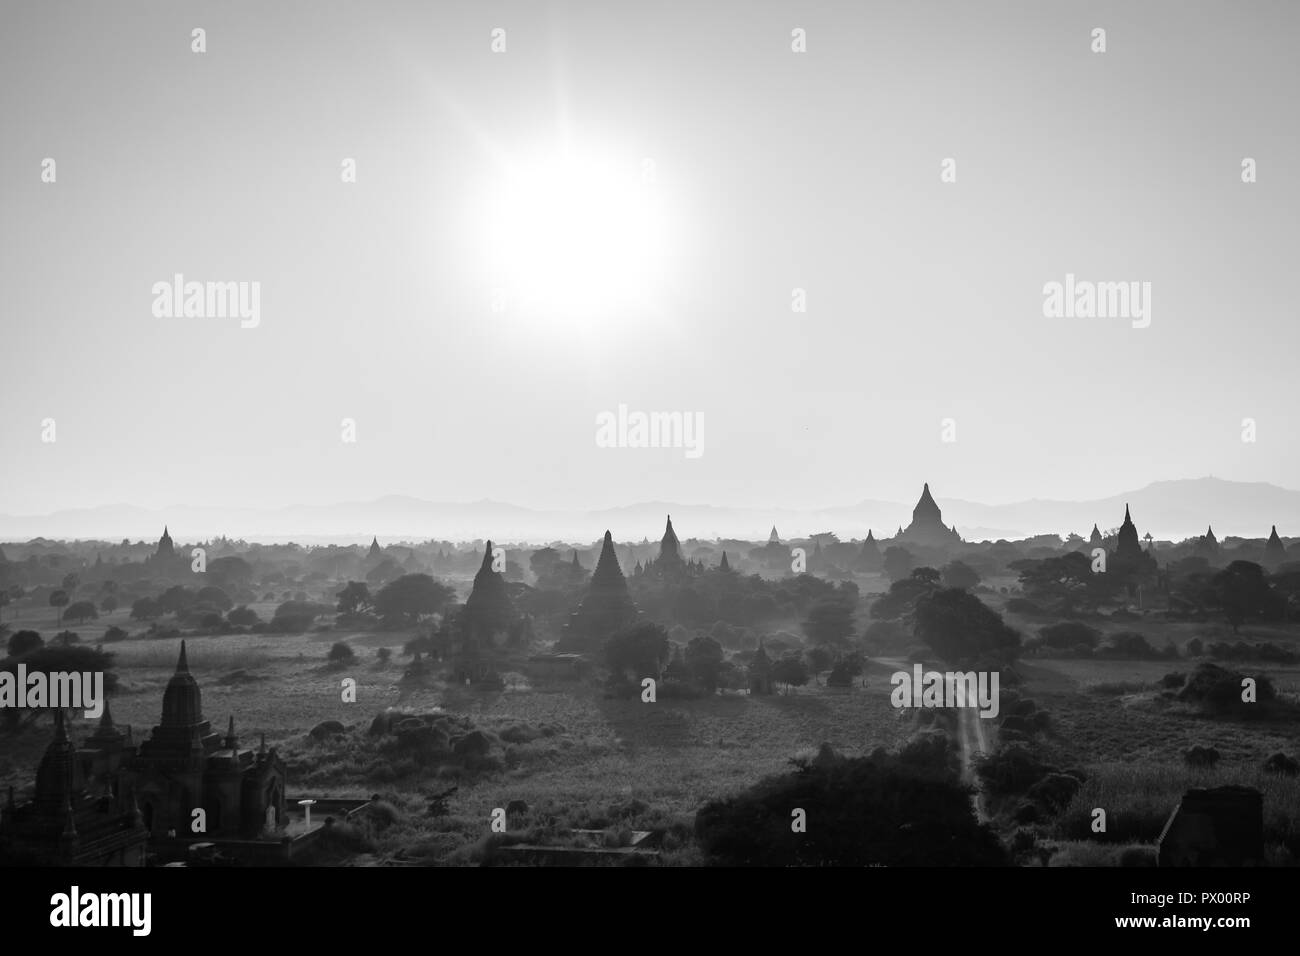 Panoramic view of Bagan stupas and temples, Myanmar - Stock Image